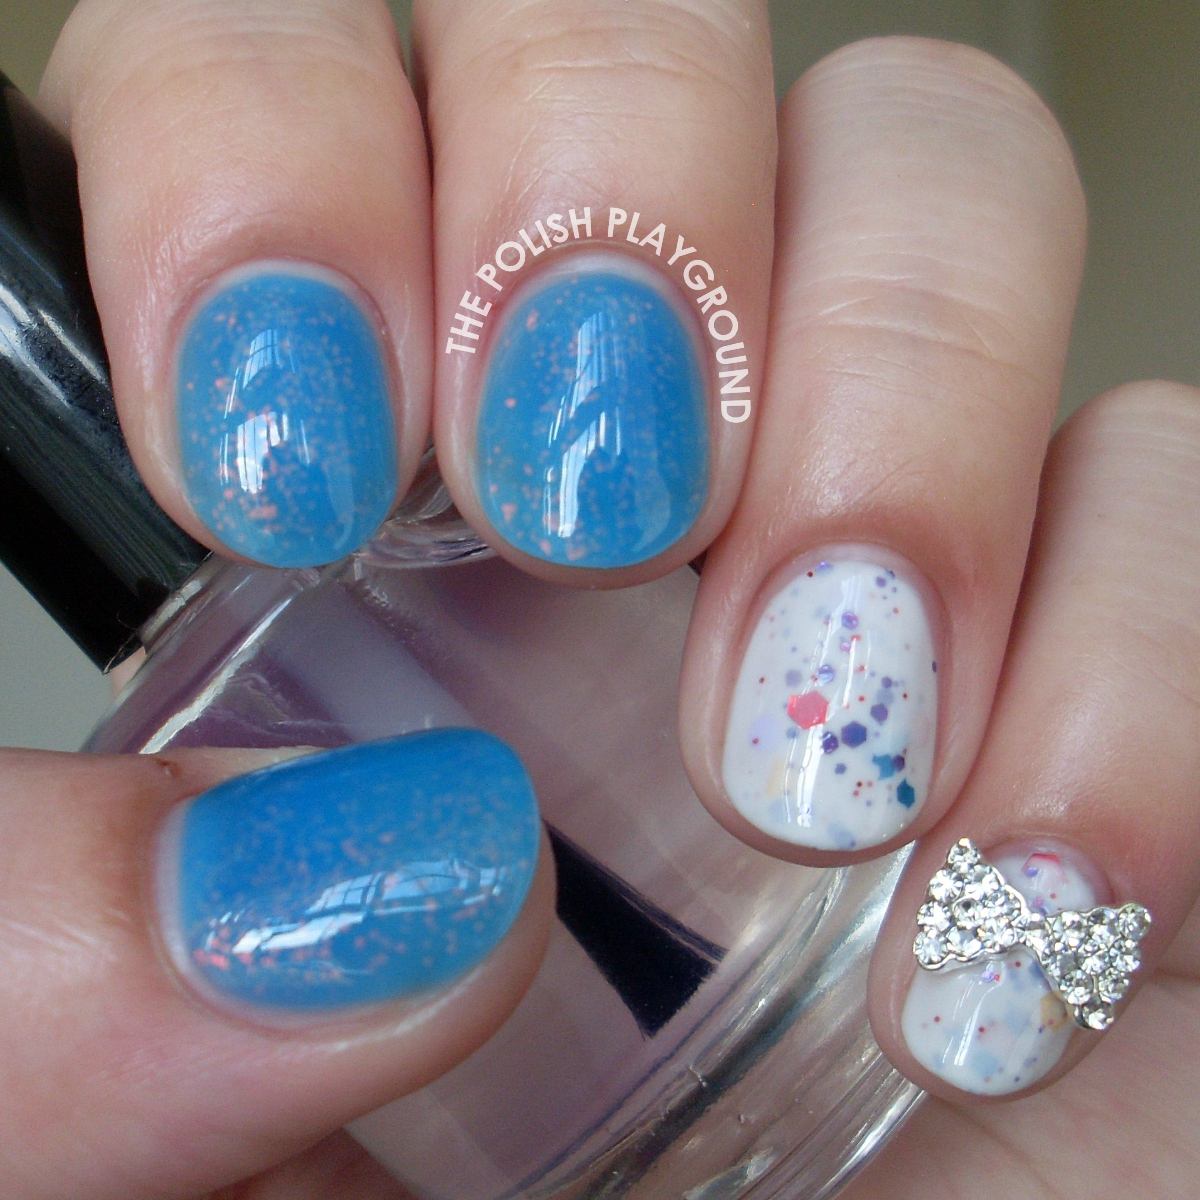 Blue Jelly Sandwich and White Crelly Combination with Bow Stud